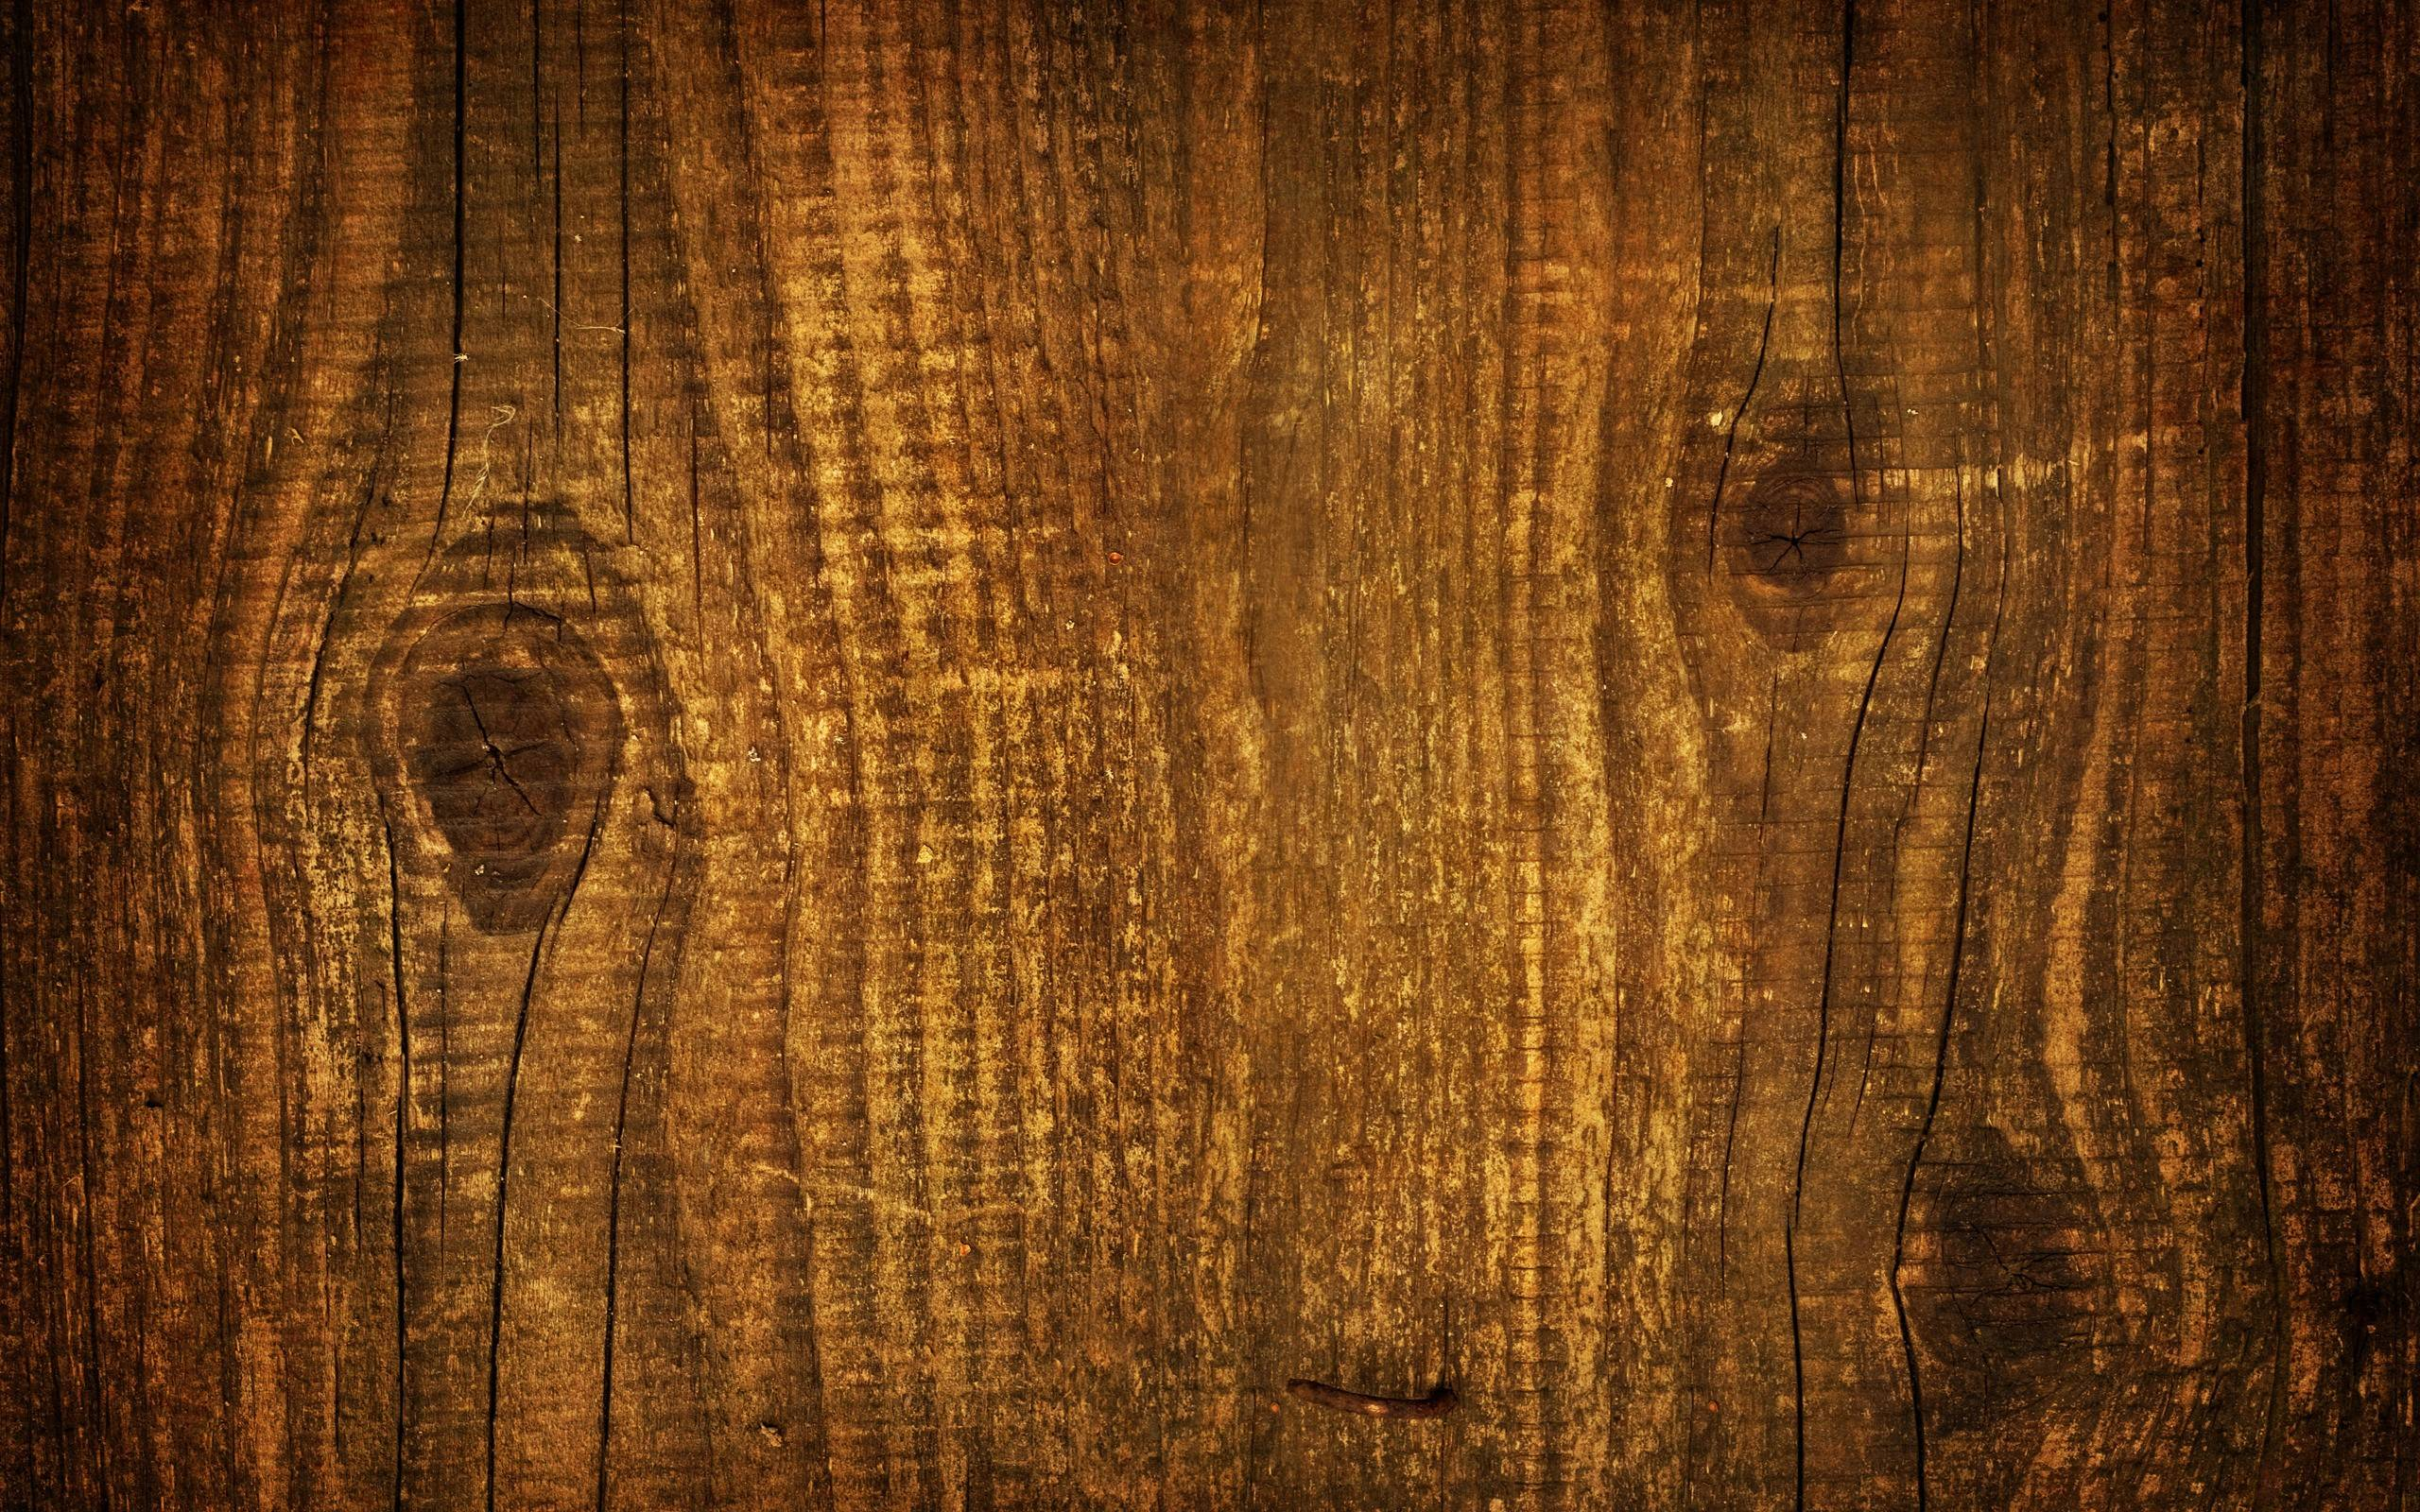 Hd wallpaper wood - 50 Hd Wood Wallpapers For Free Download